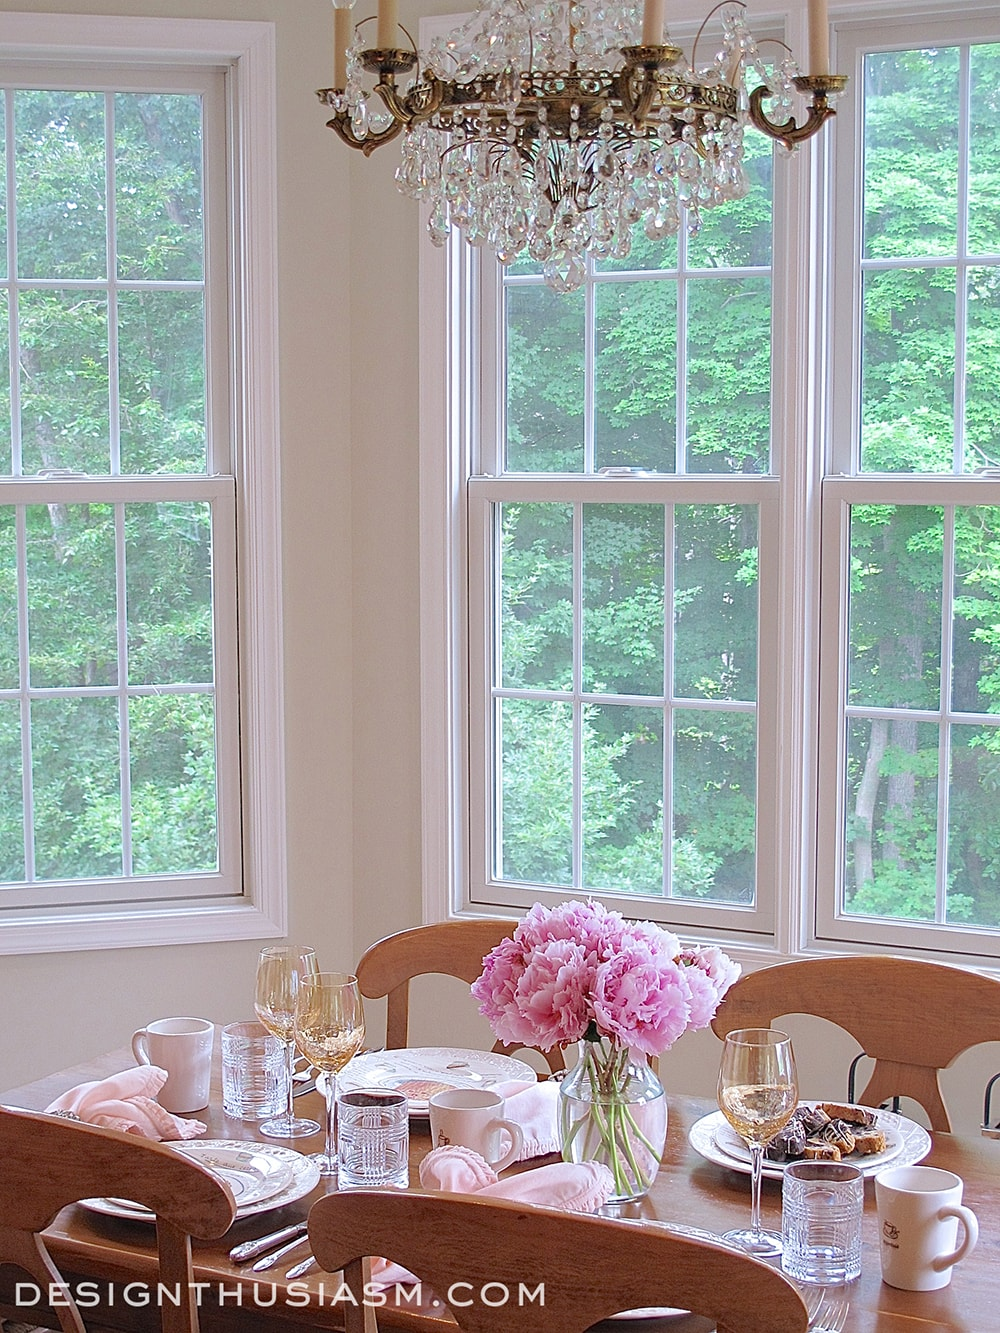 Light Filled Breakfast Room - Designthusiasm.com